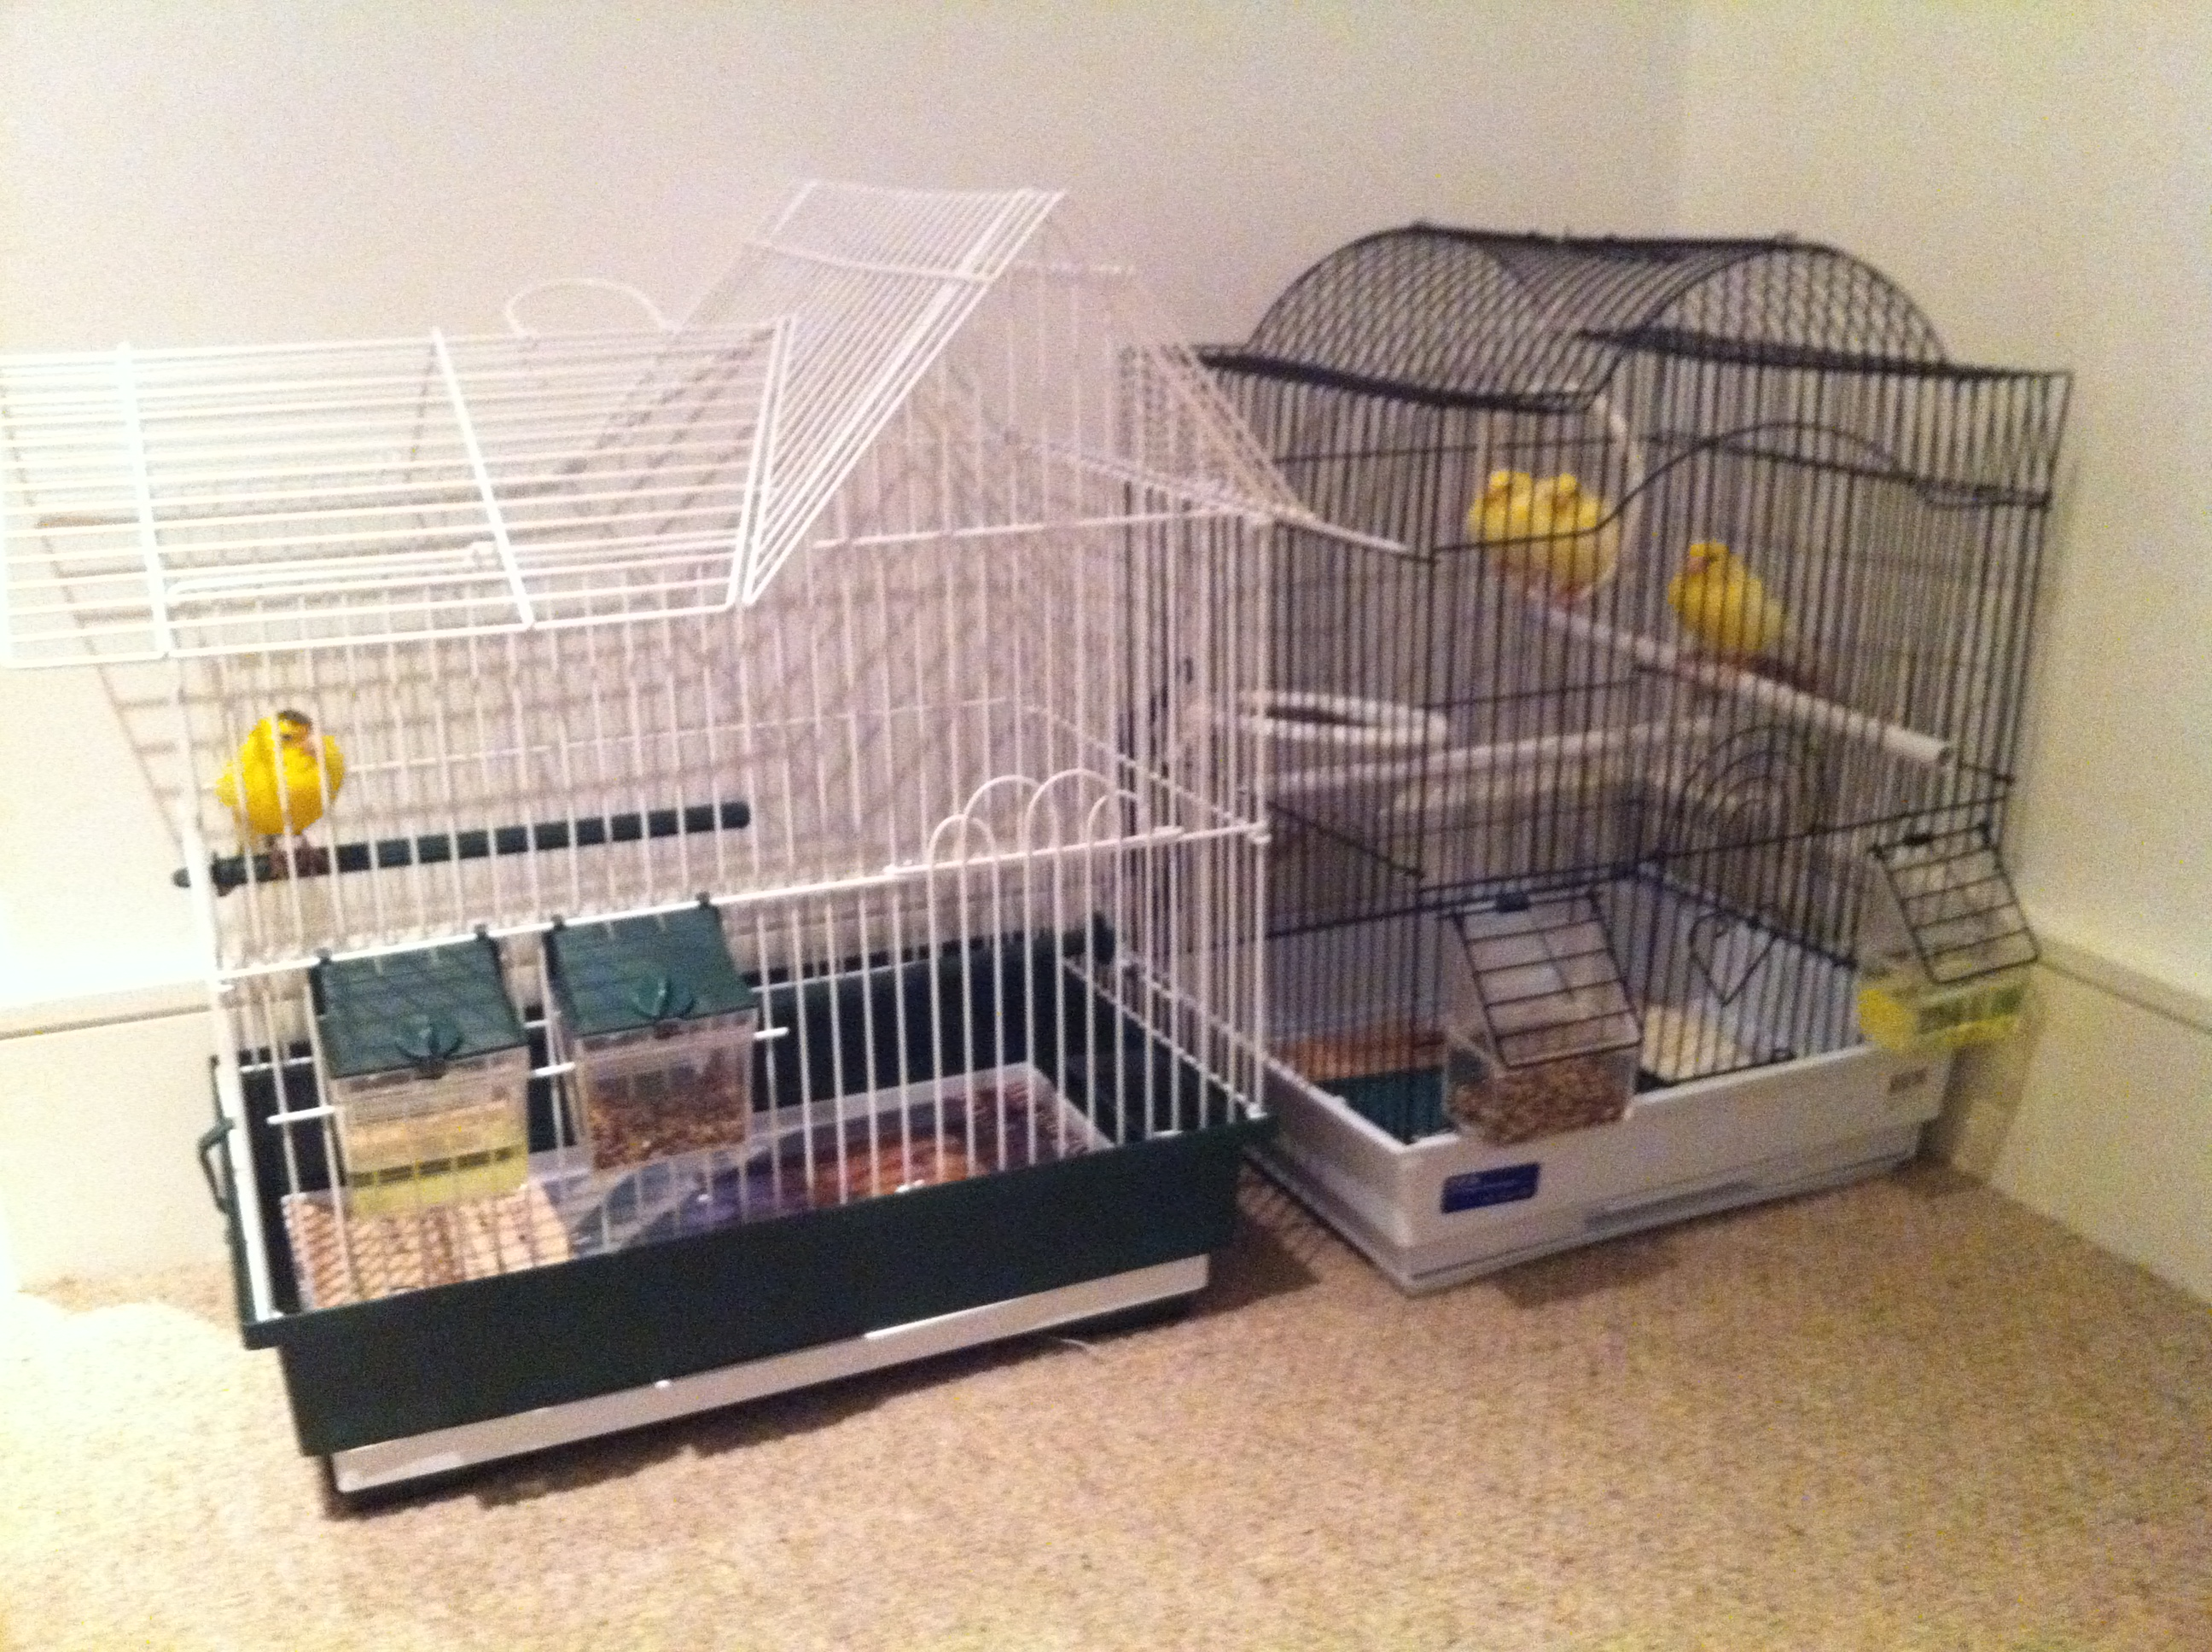 FOR SALE / ADOPTION: 4 Canaries for sale